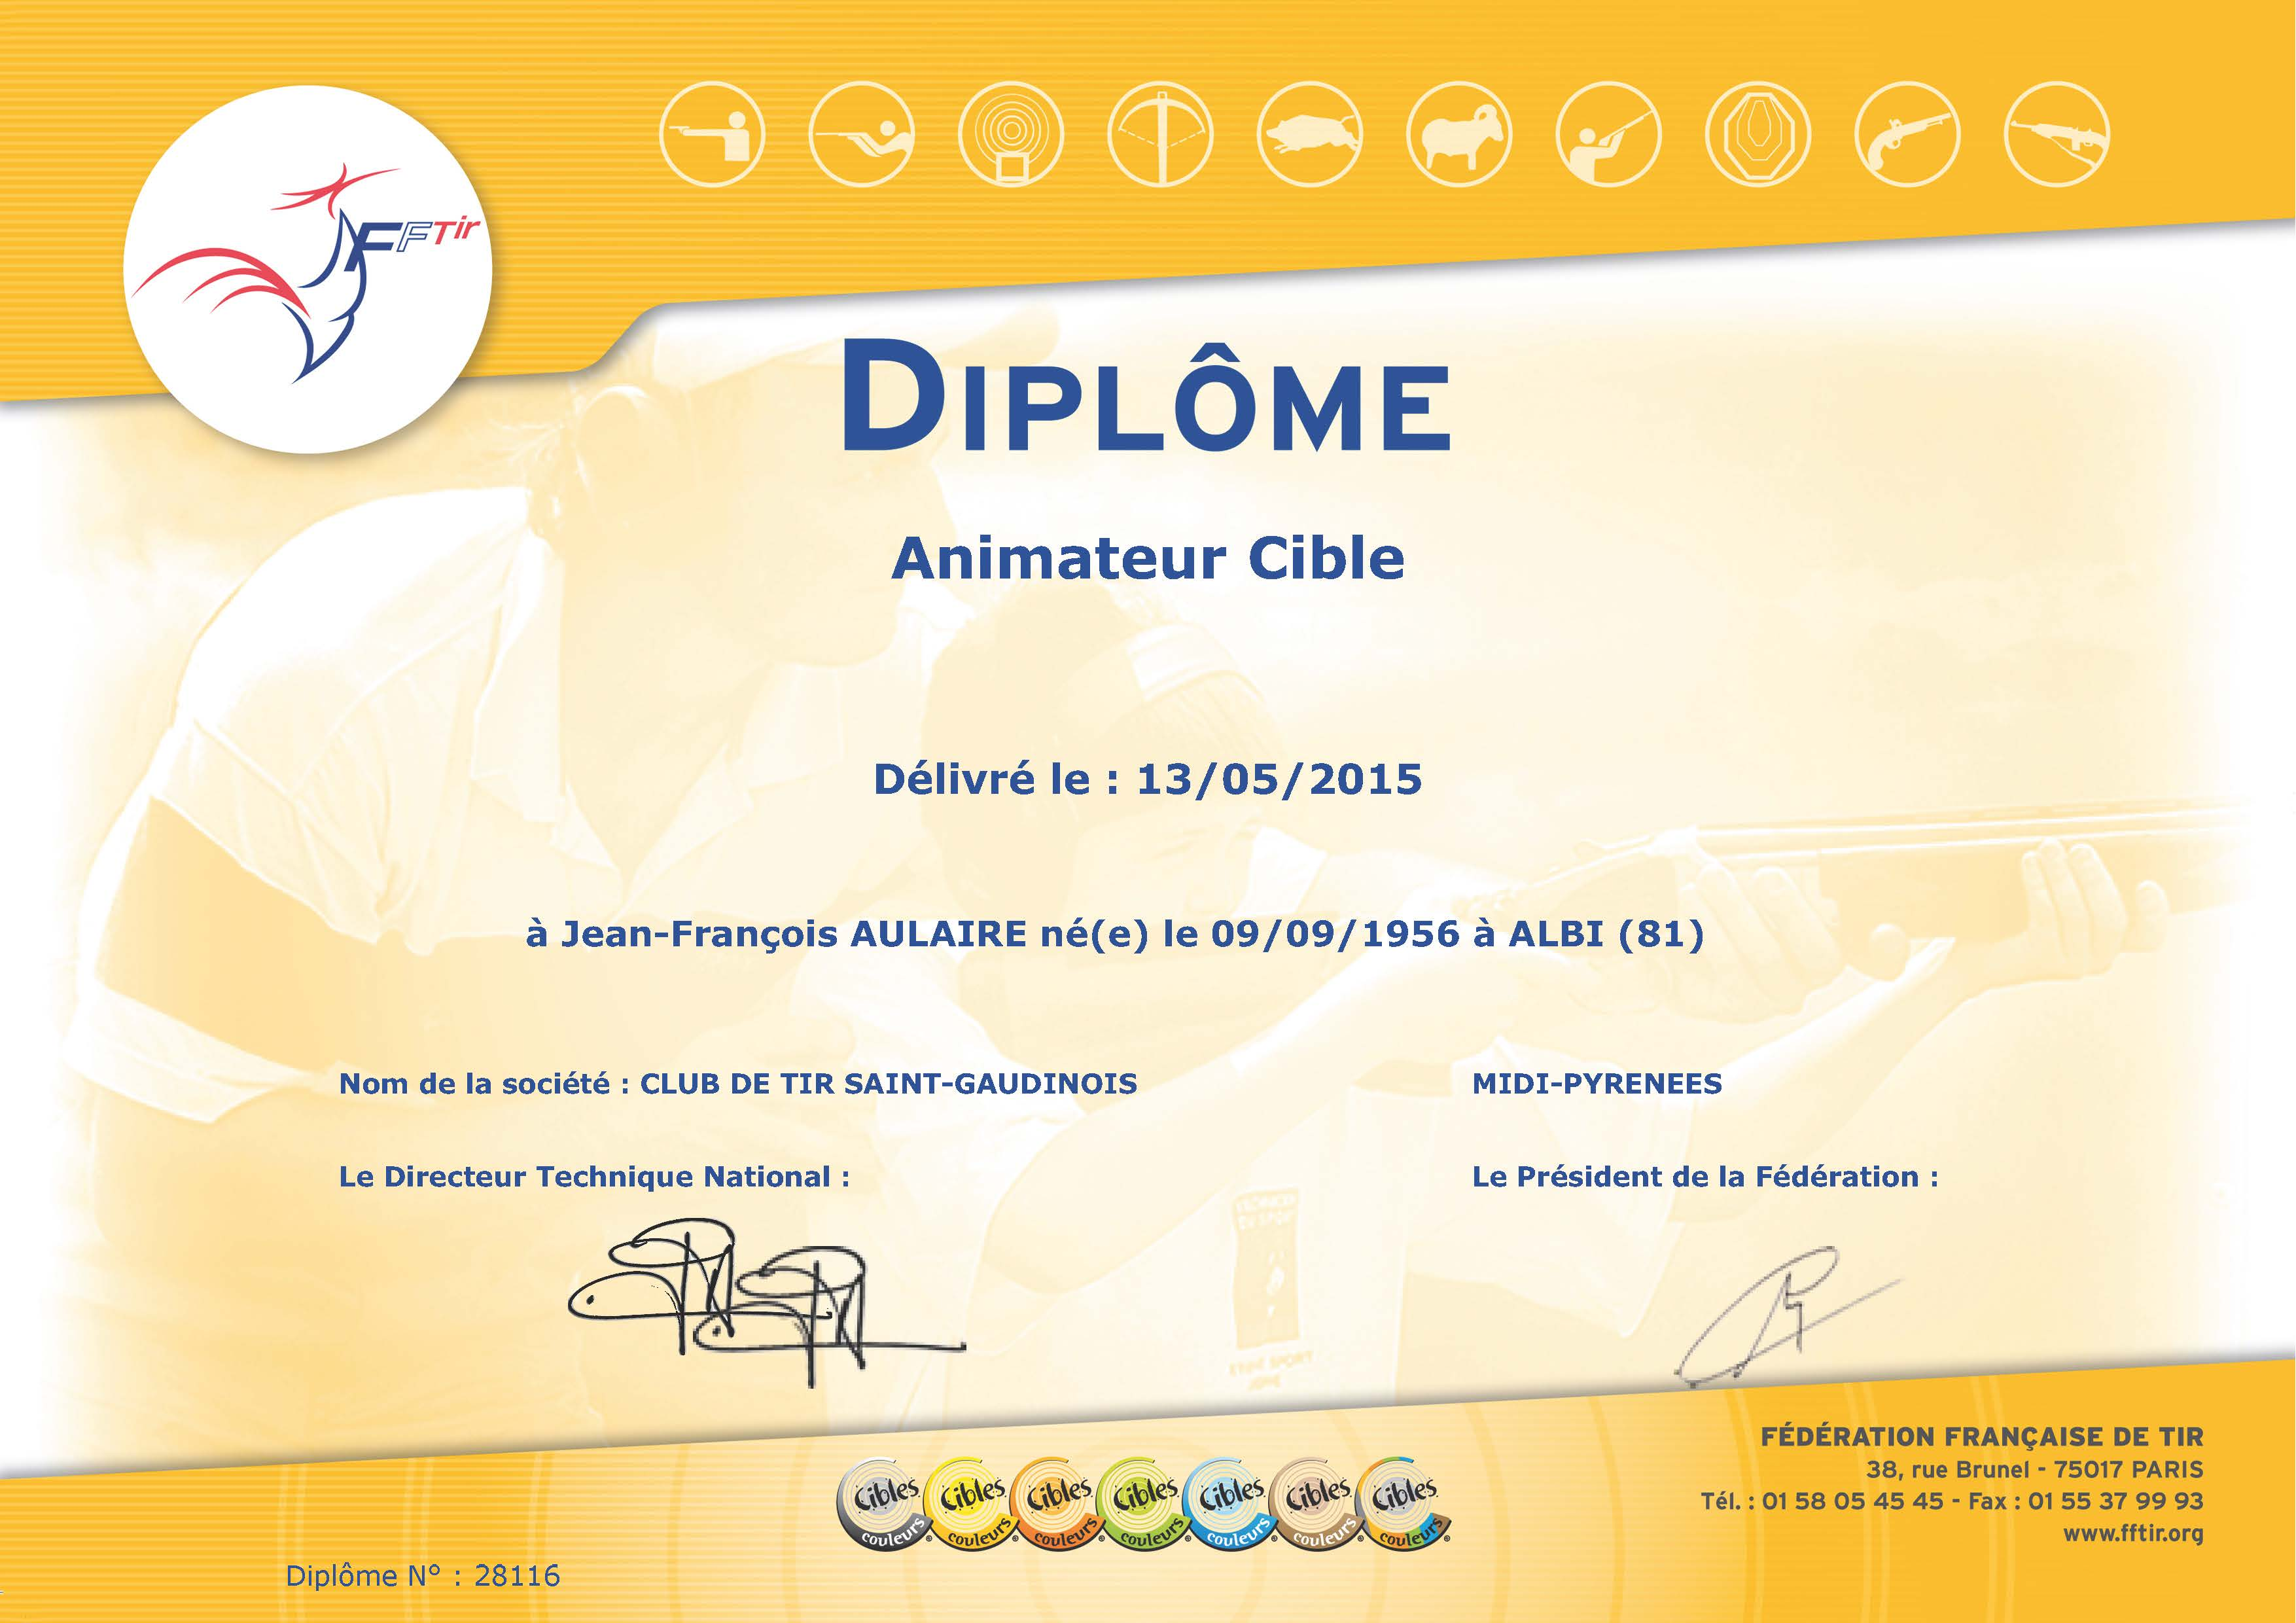 Diplome_Aulaire01087568_Animateur.jpg